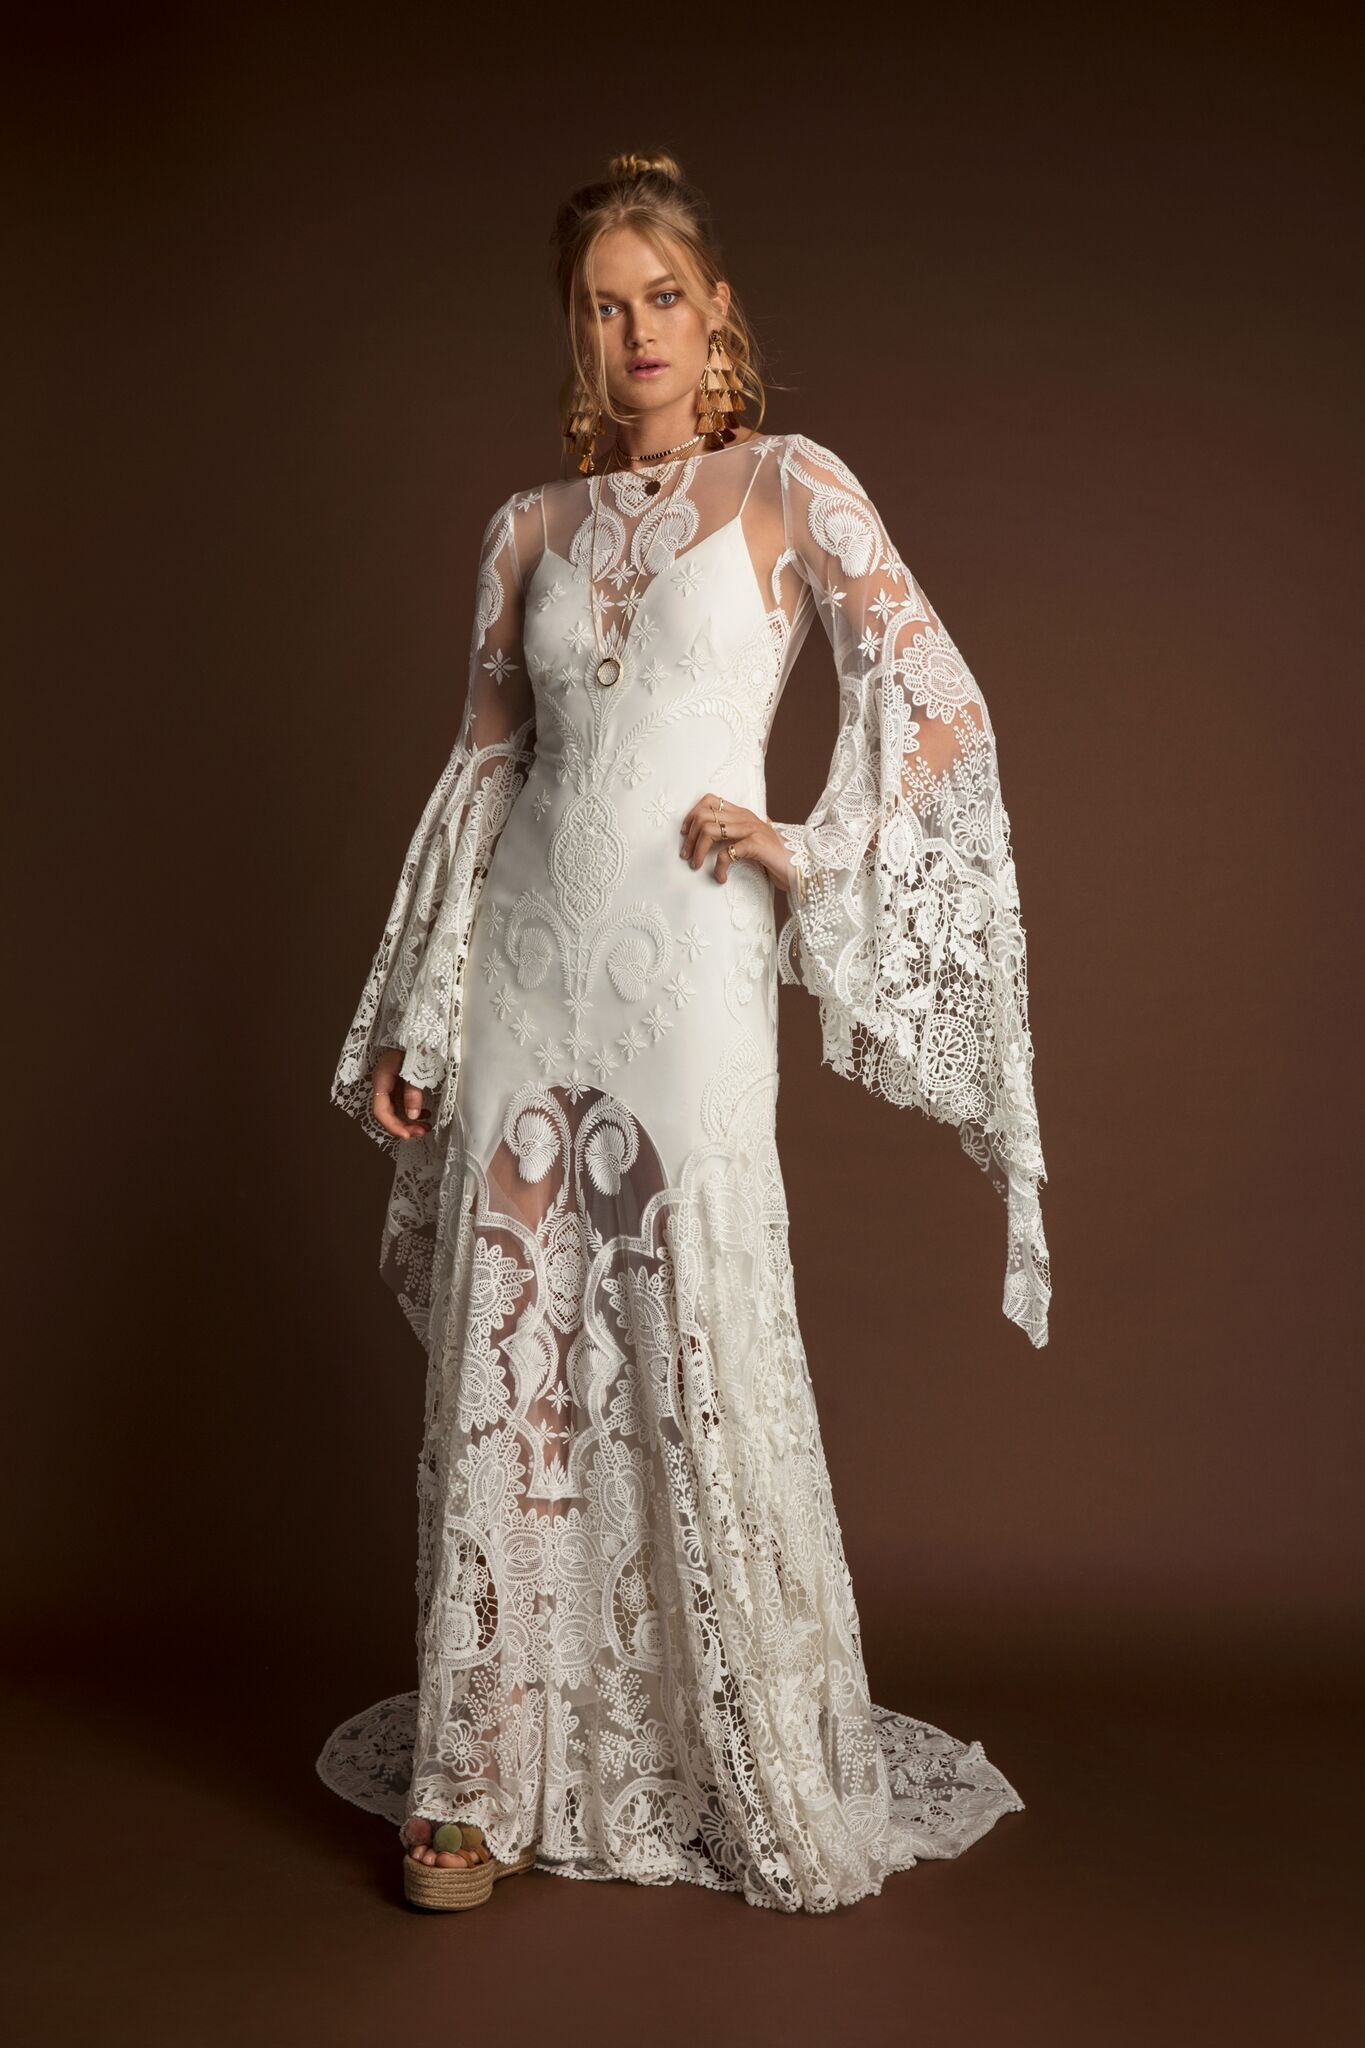 New rue de seine wedding dresses trunk show dates bohemian